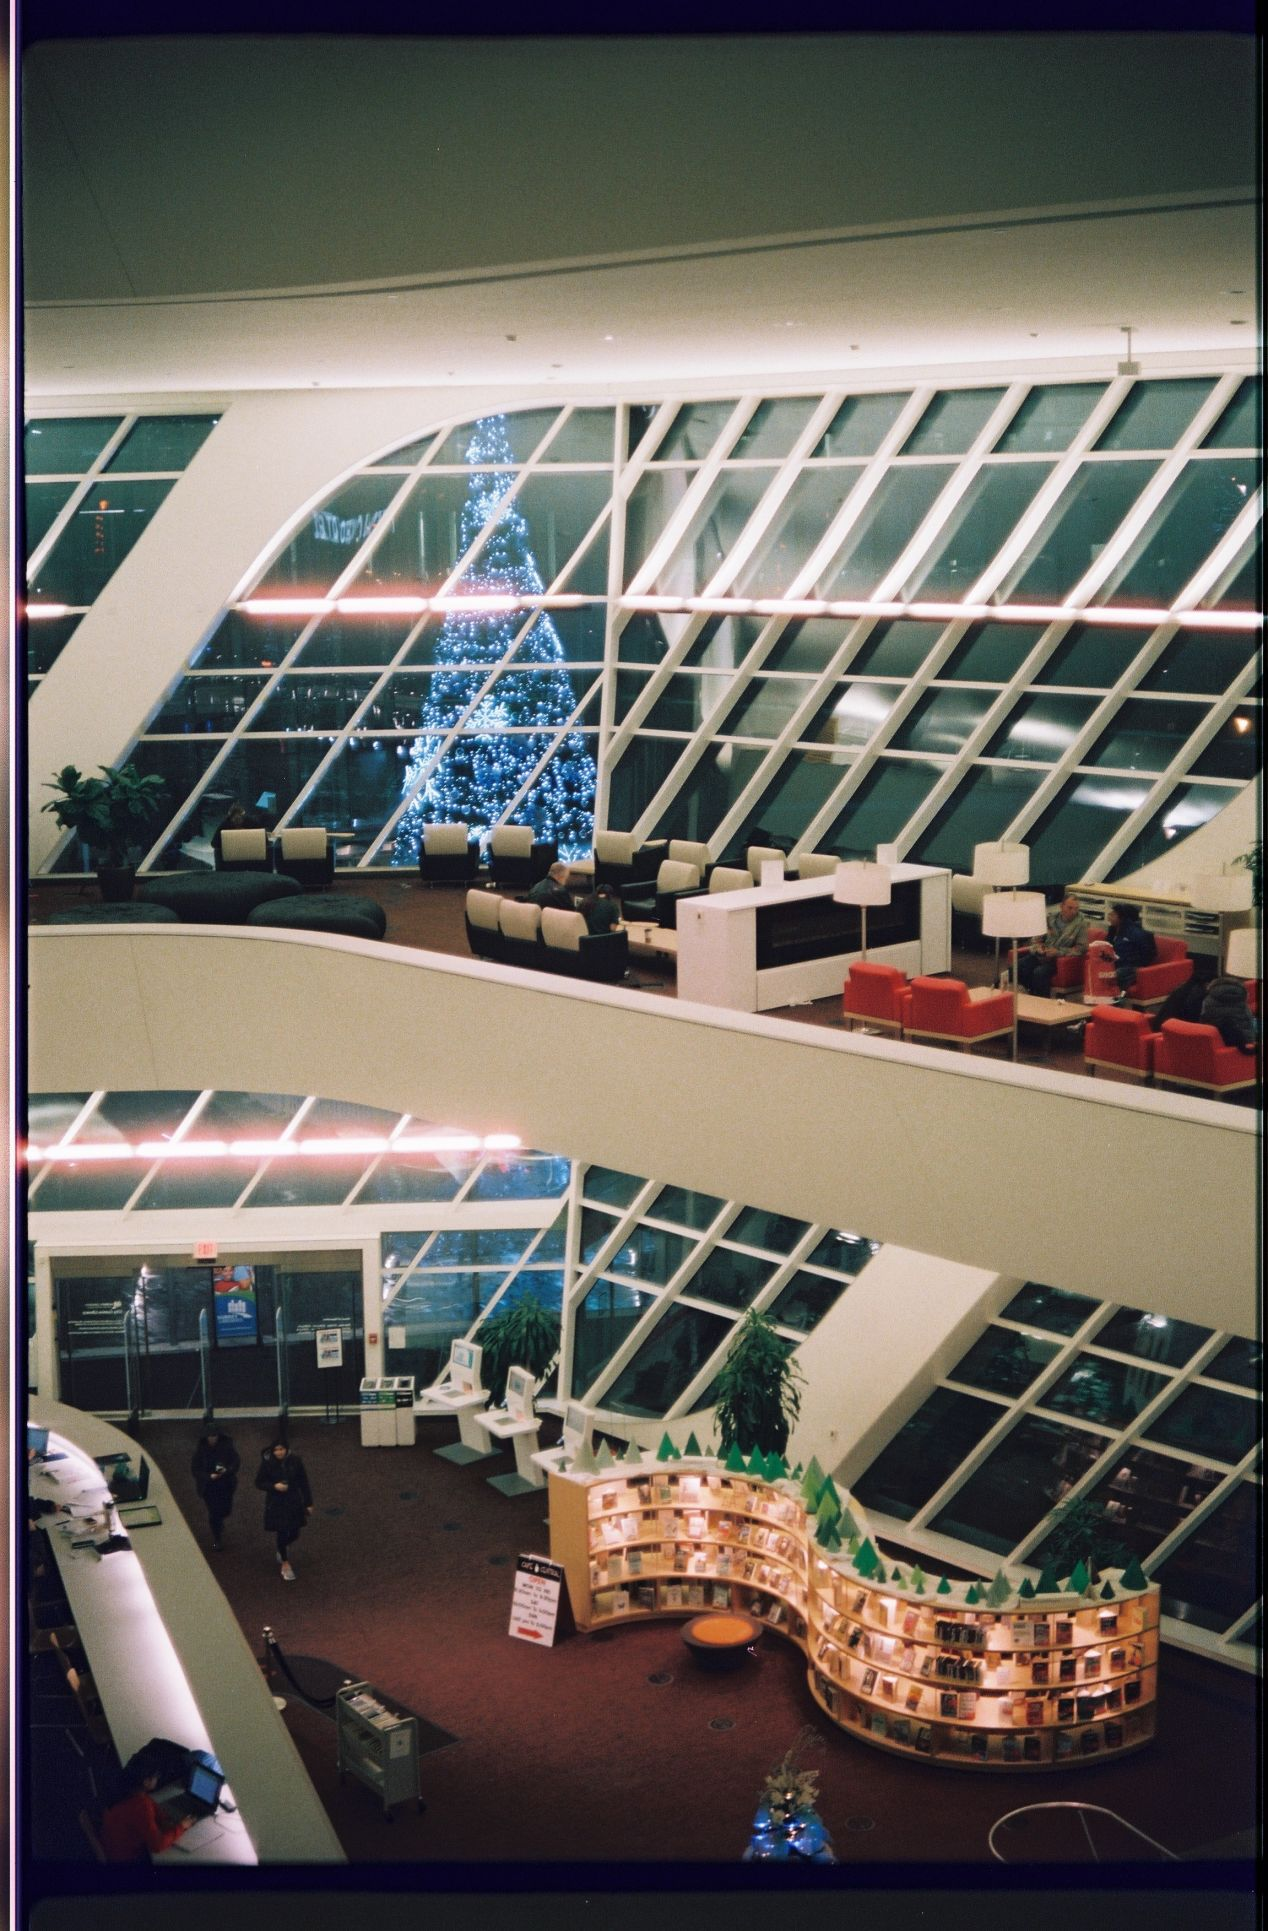 I'm lucky to have such a fancy space at a local library. This is how it used to look before the pandemic.